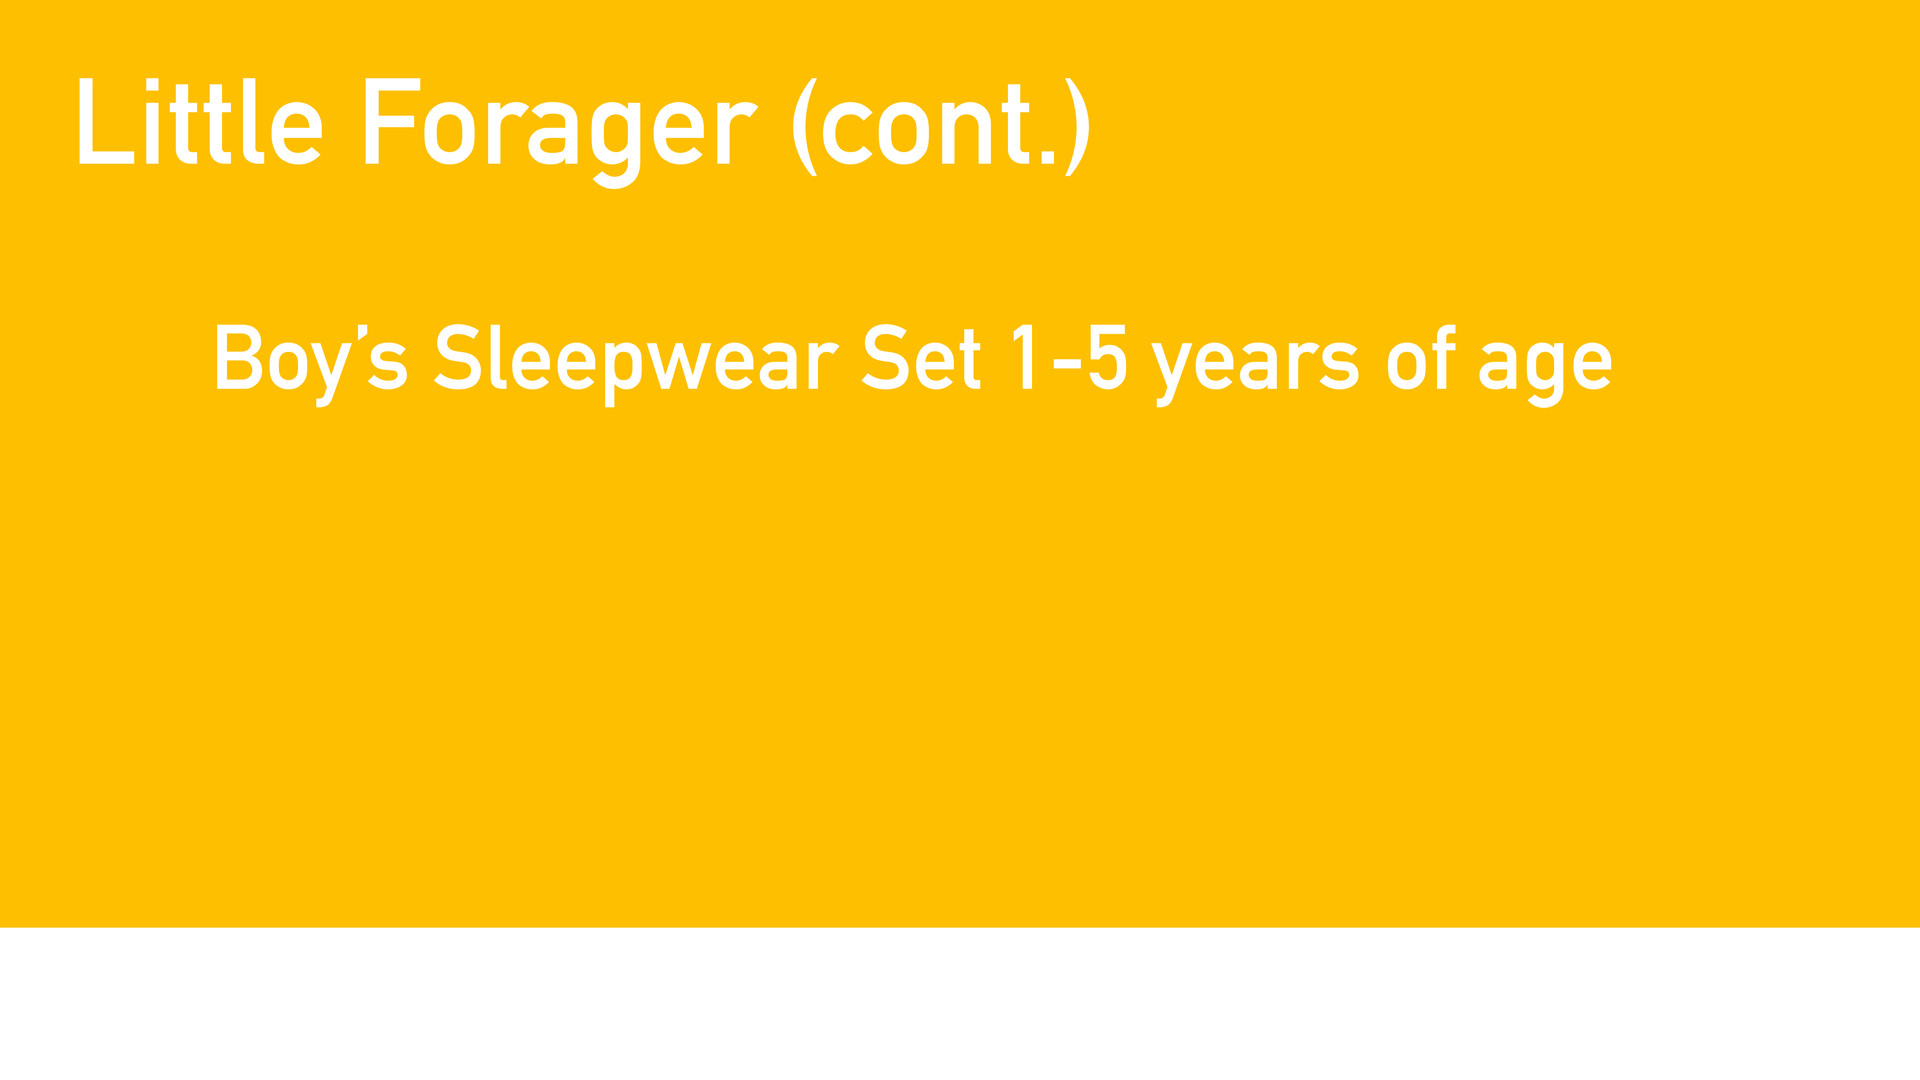 Boys Sleepwear set